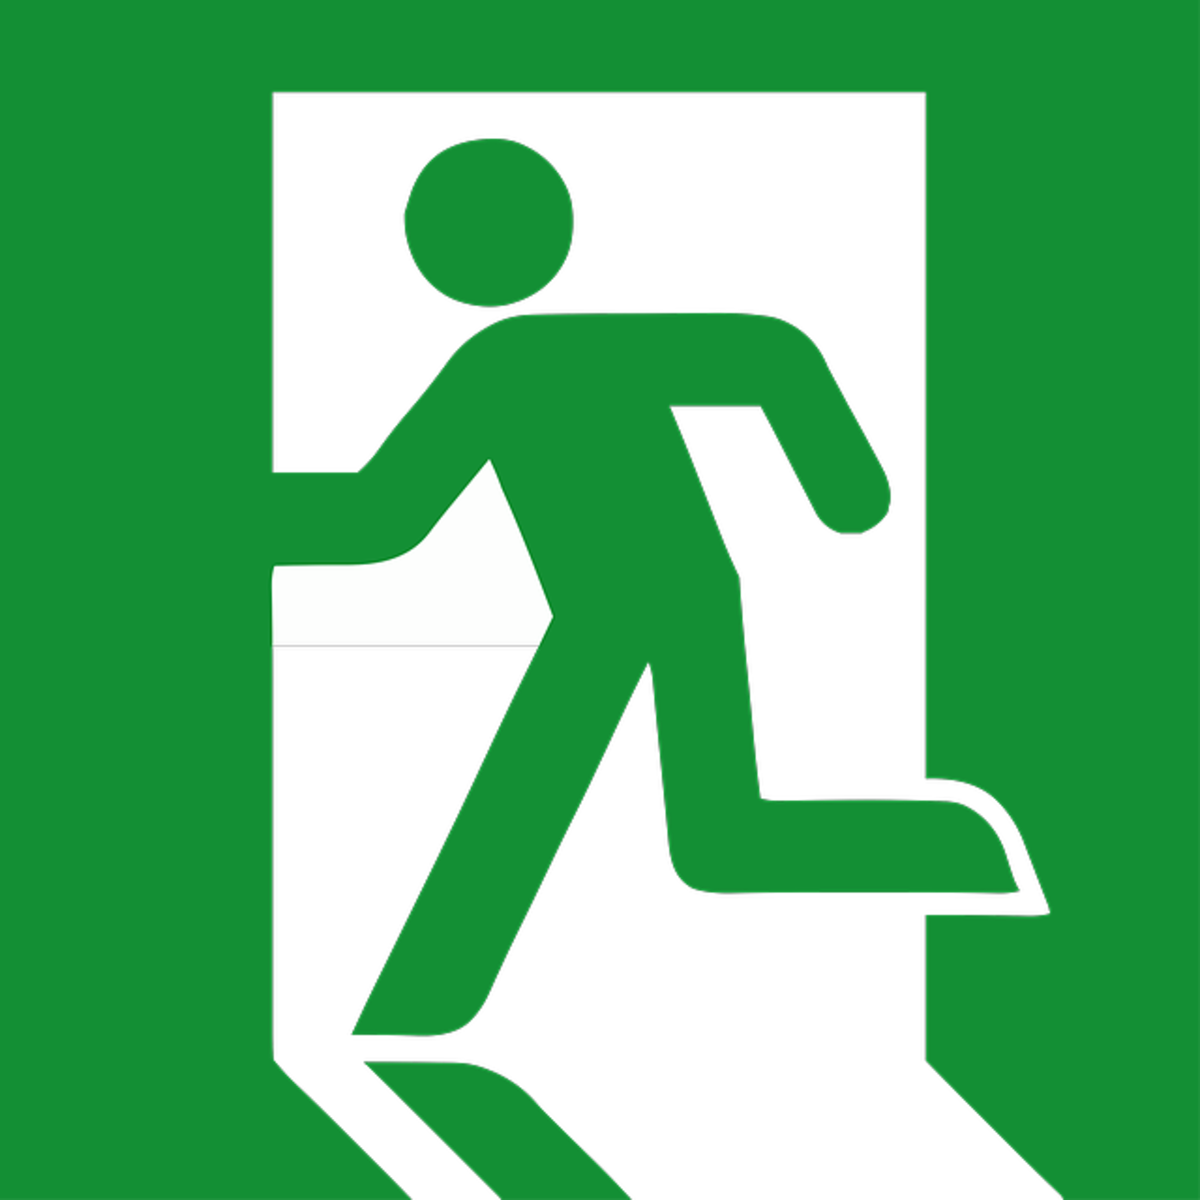 Walk, don't run towards the exit!